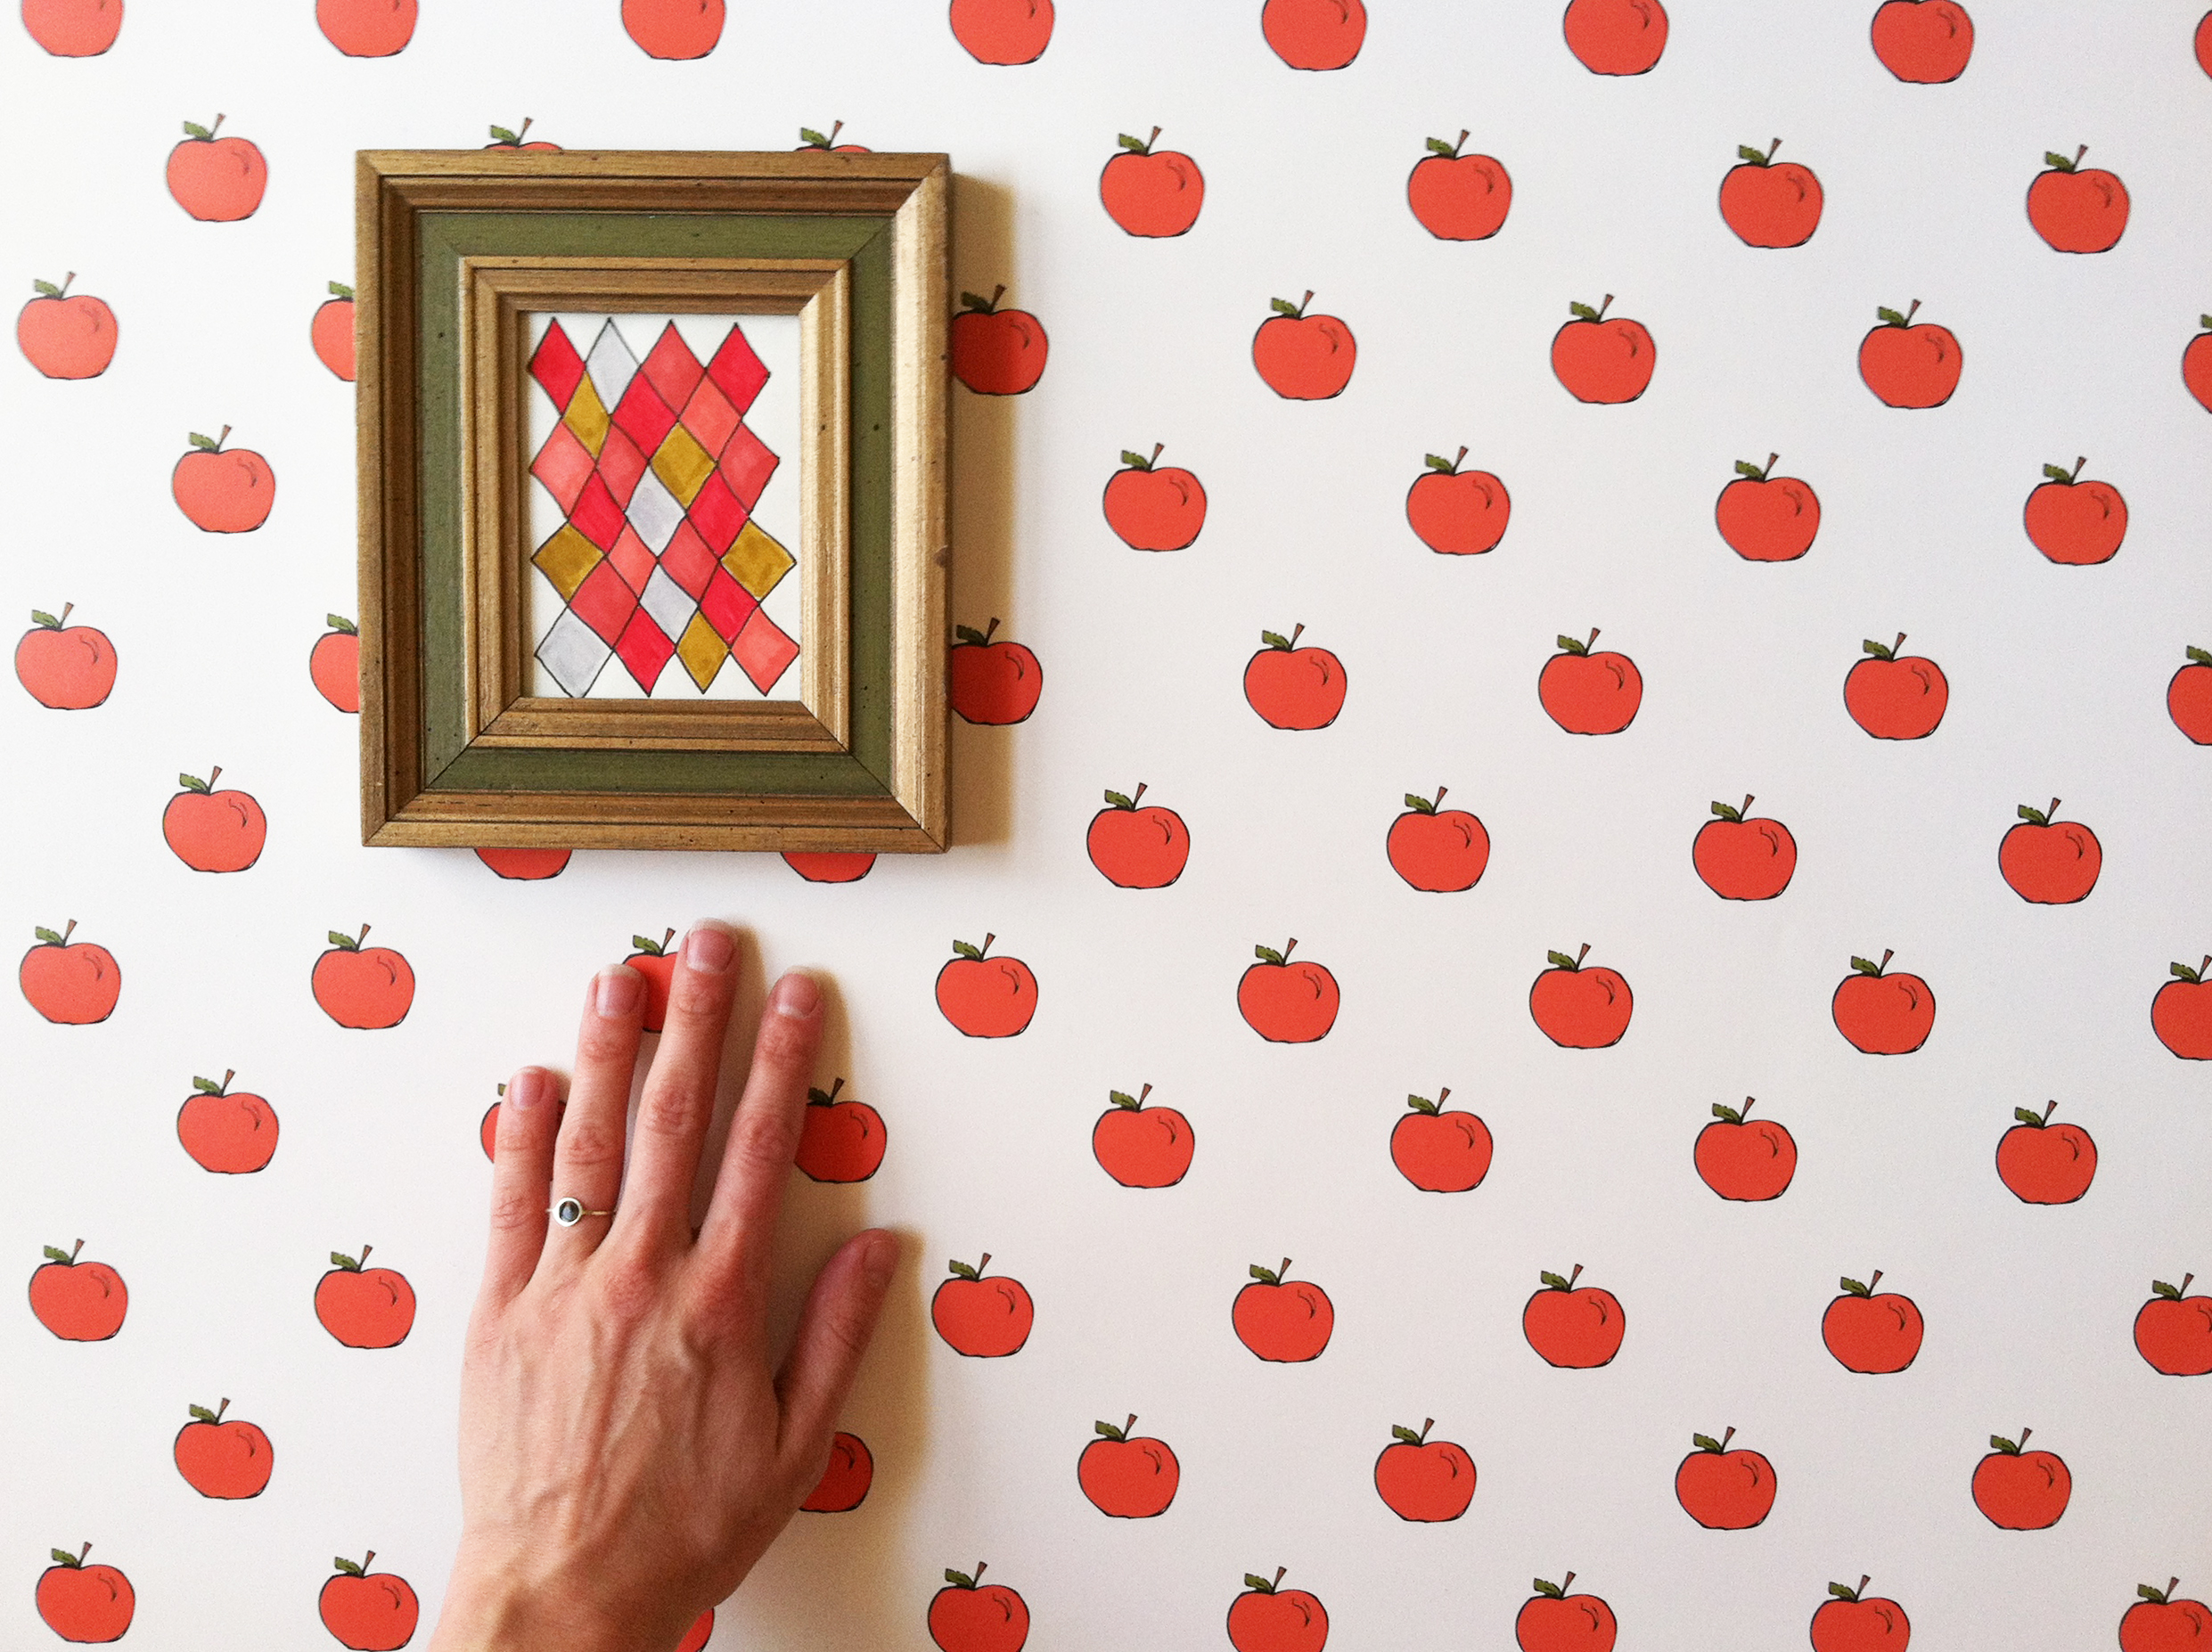 Apples to Apples wallpaper by Kate Zaremba Company